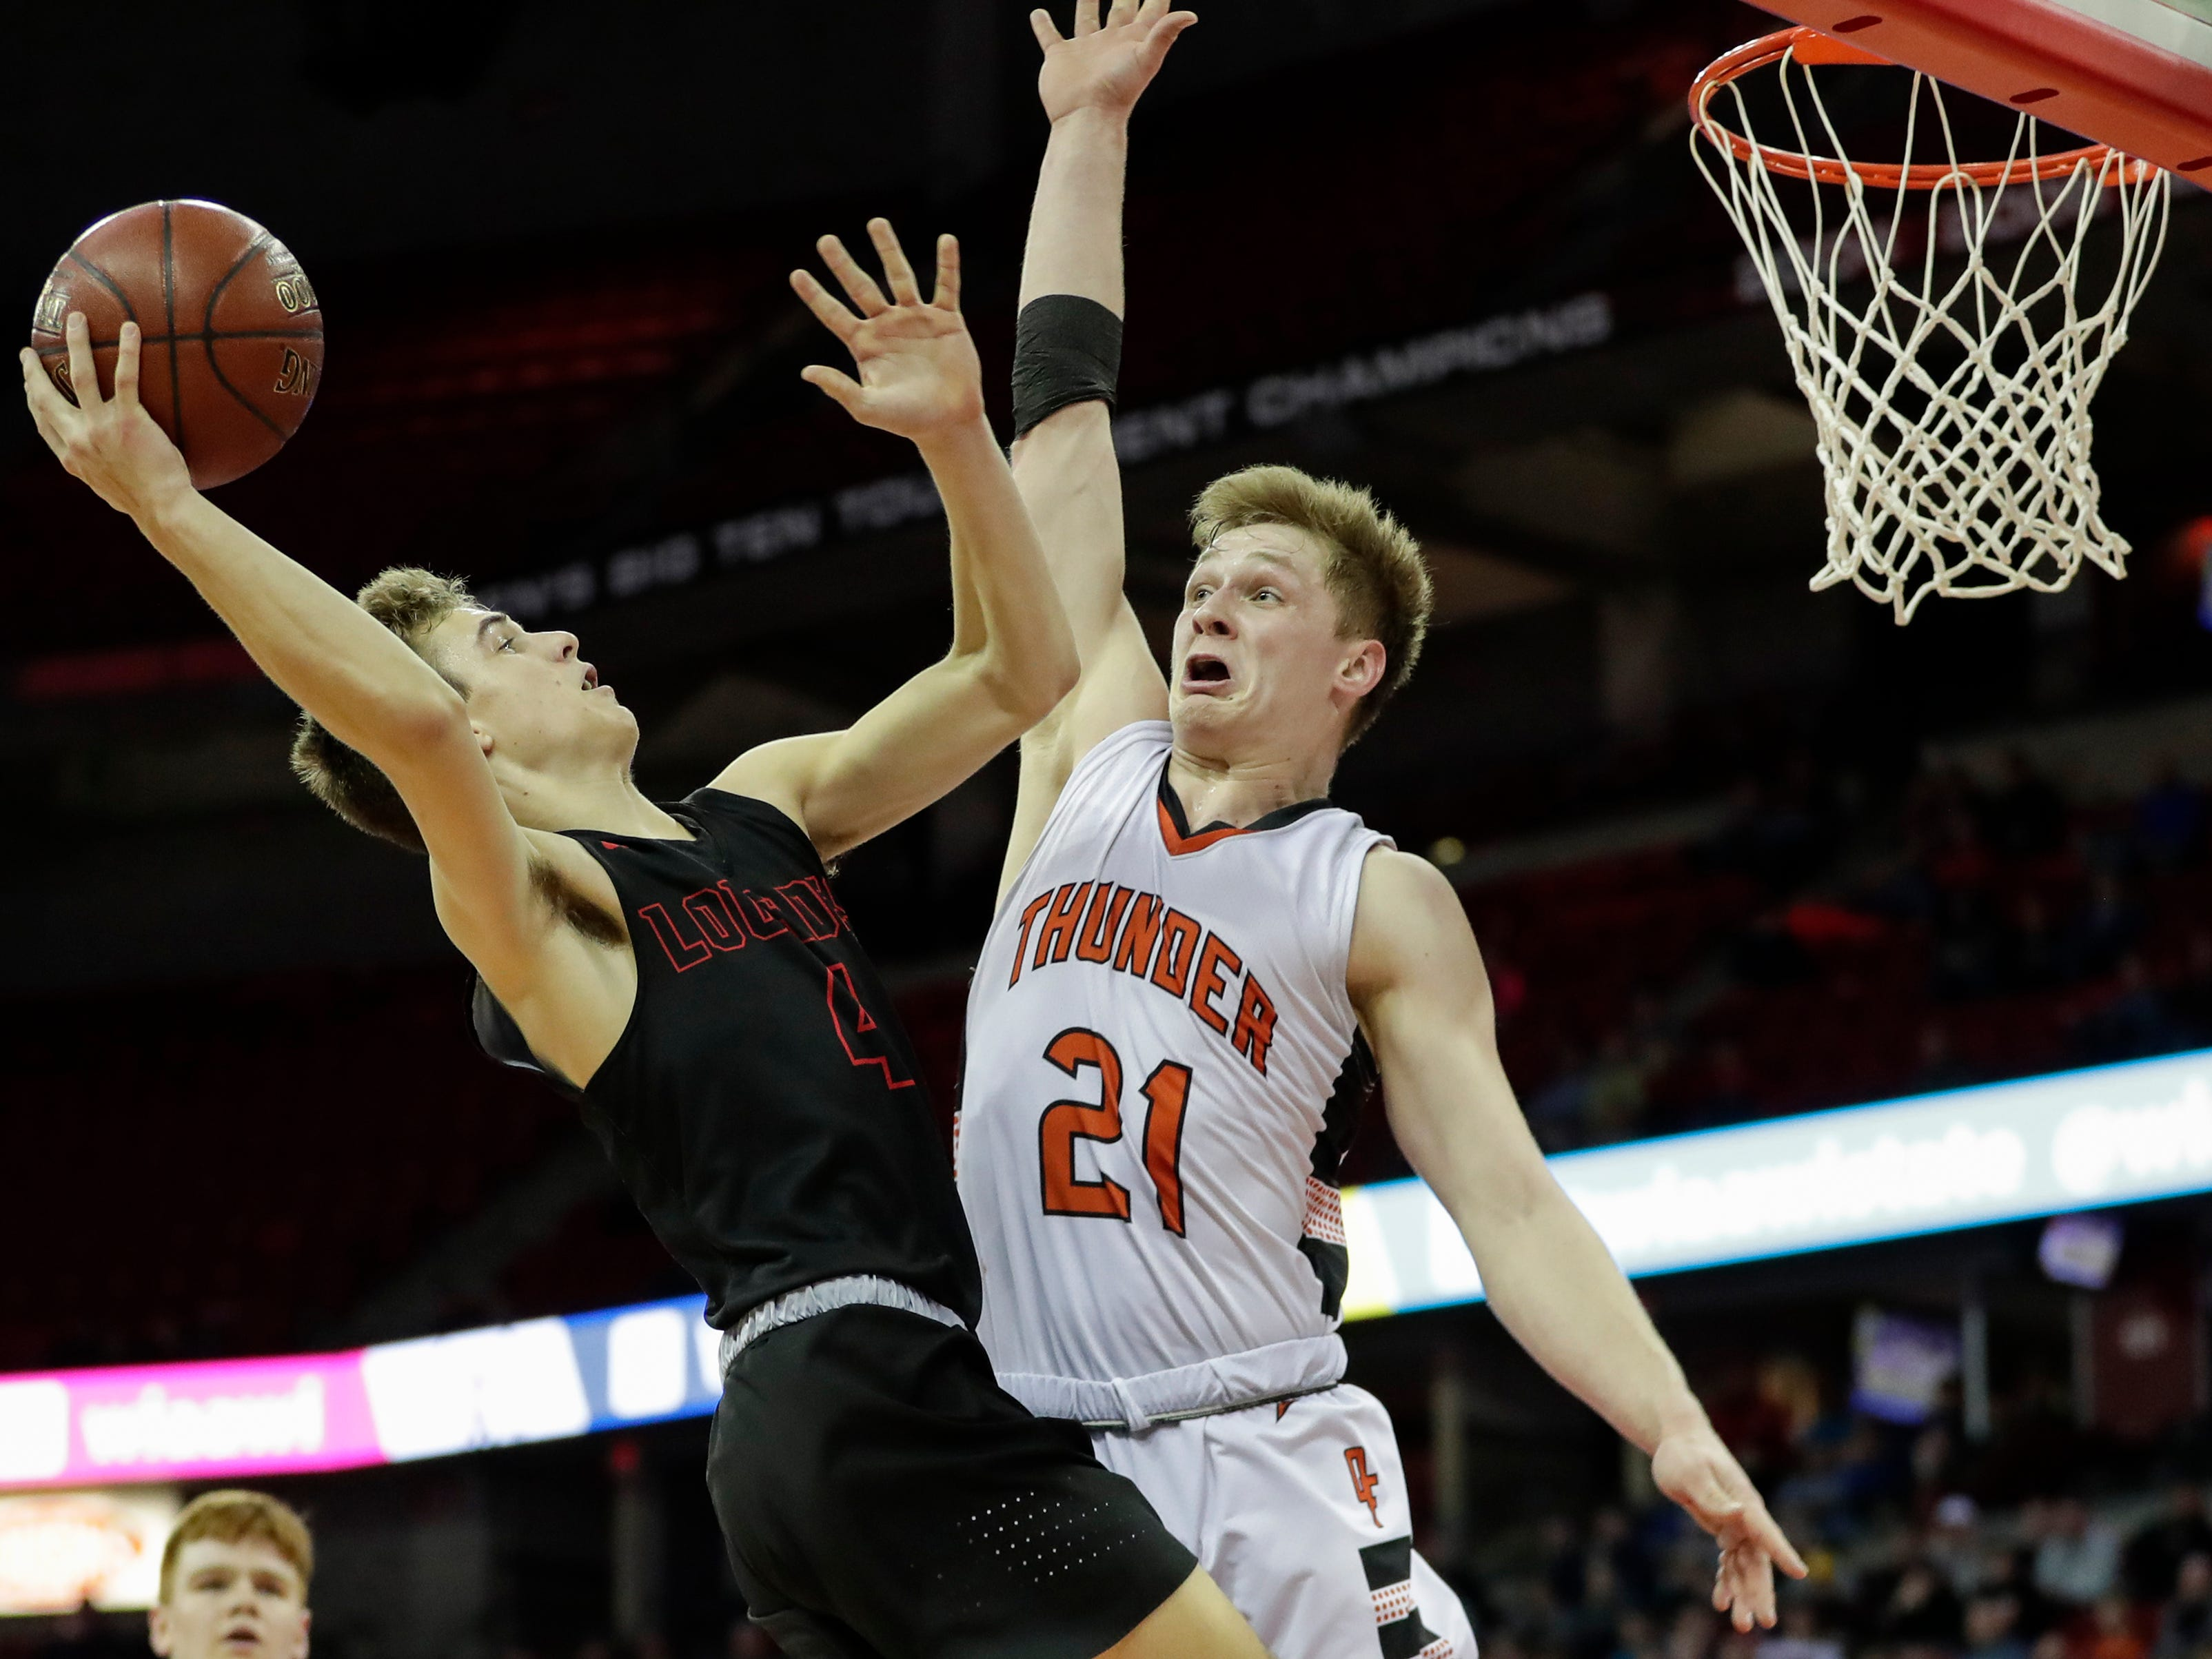 Lourdes Academy's Preston Ruedinger (4) looks to shoot around Osseo-Fairchild High School's Logan Mulhern (21) during their WIAA Division 4 boys basketball state semifinal at the Kohl Center Thursday, March 14, 2019, in Madison, Wis.